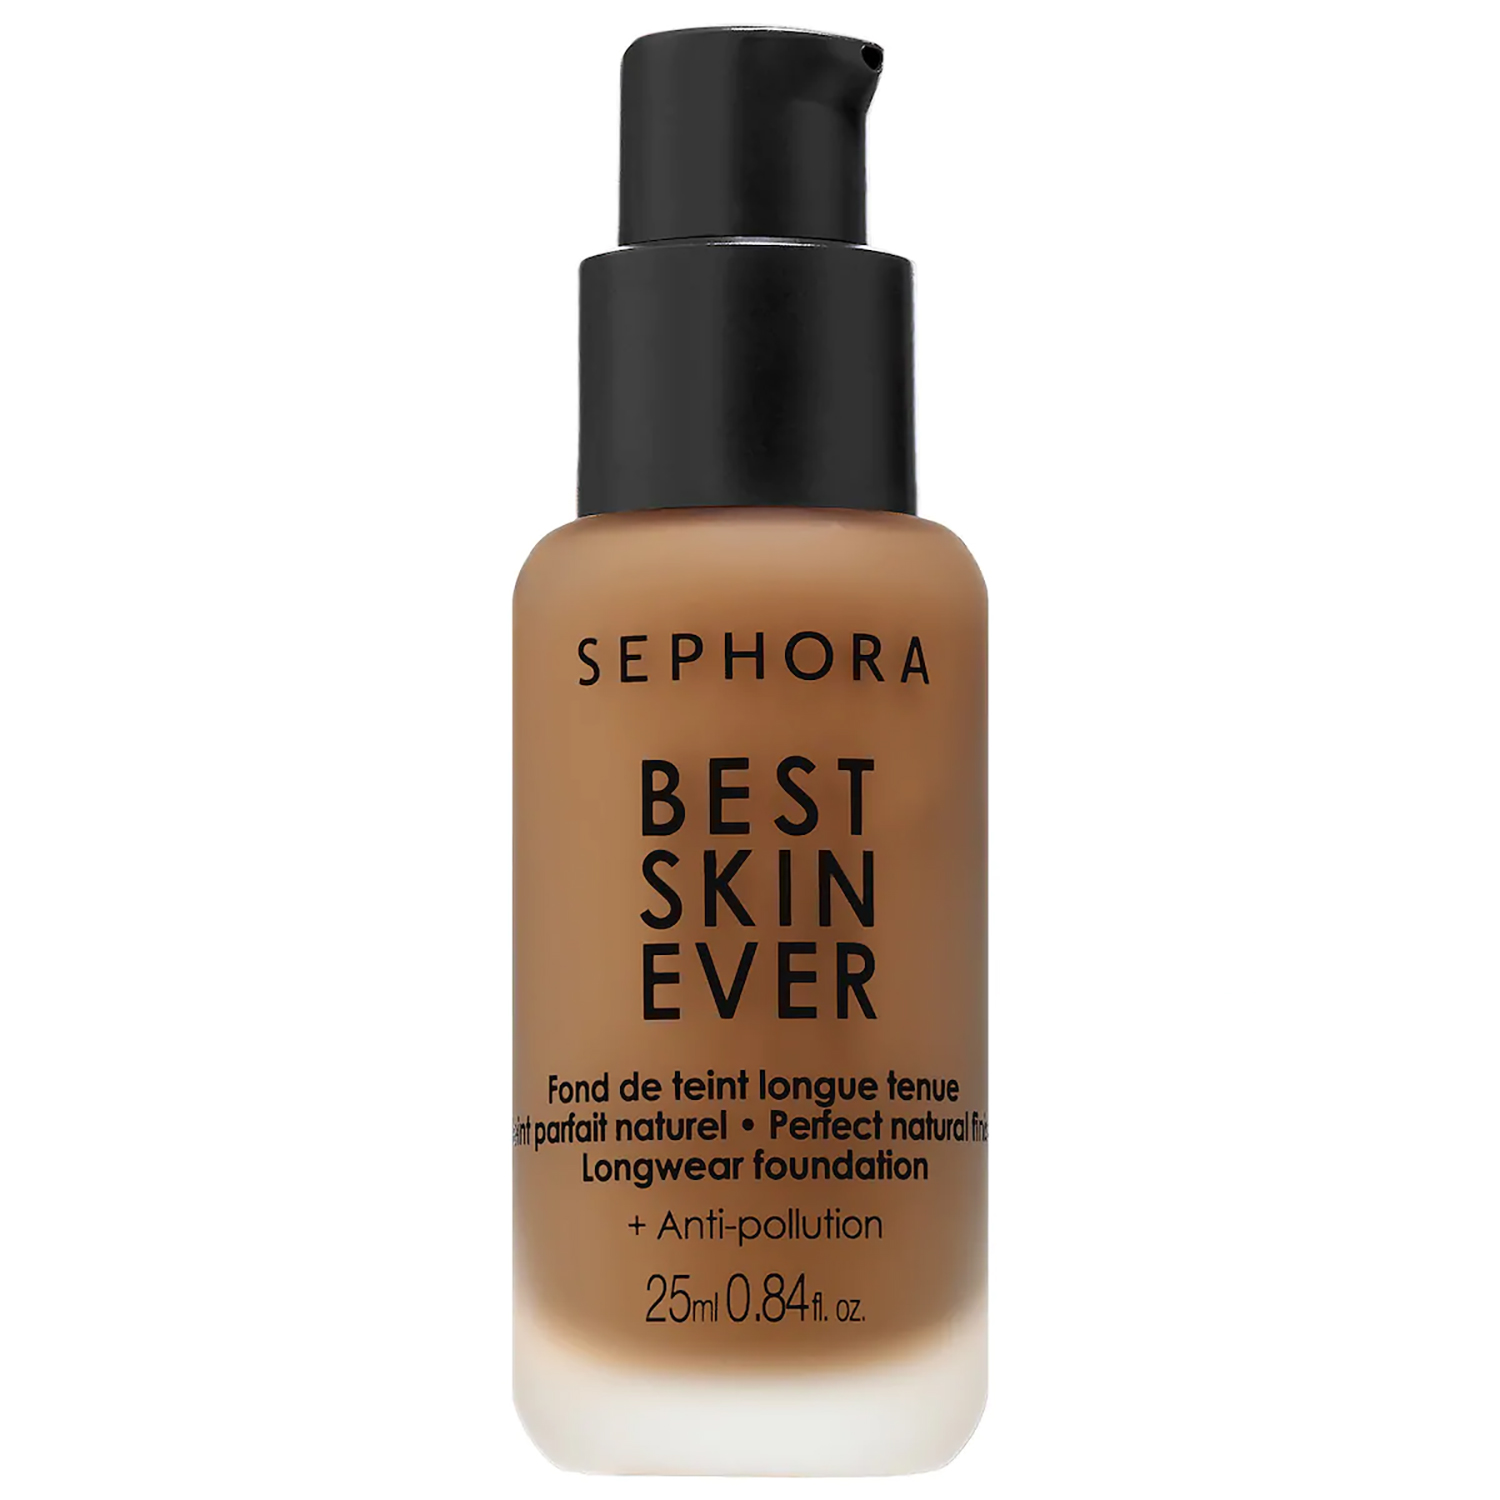 Sephora Best Skin Ever foundation